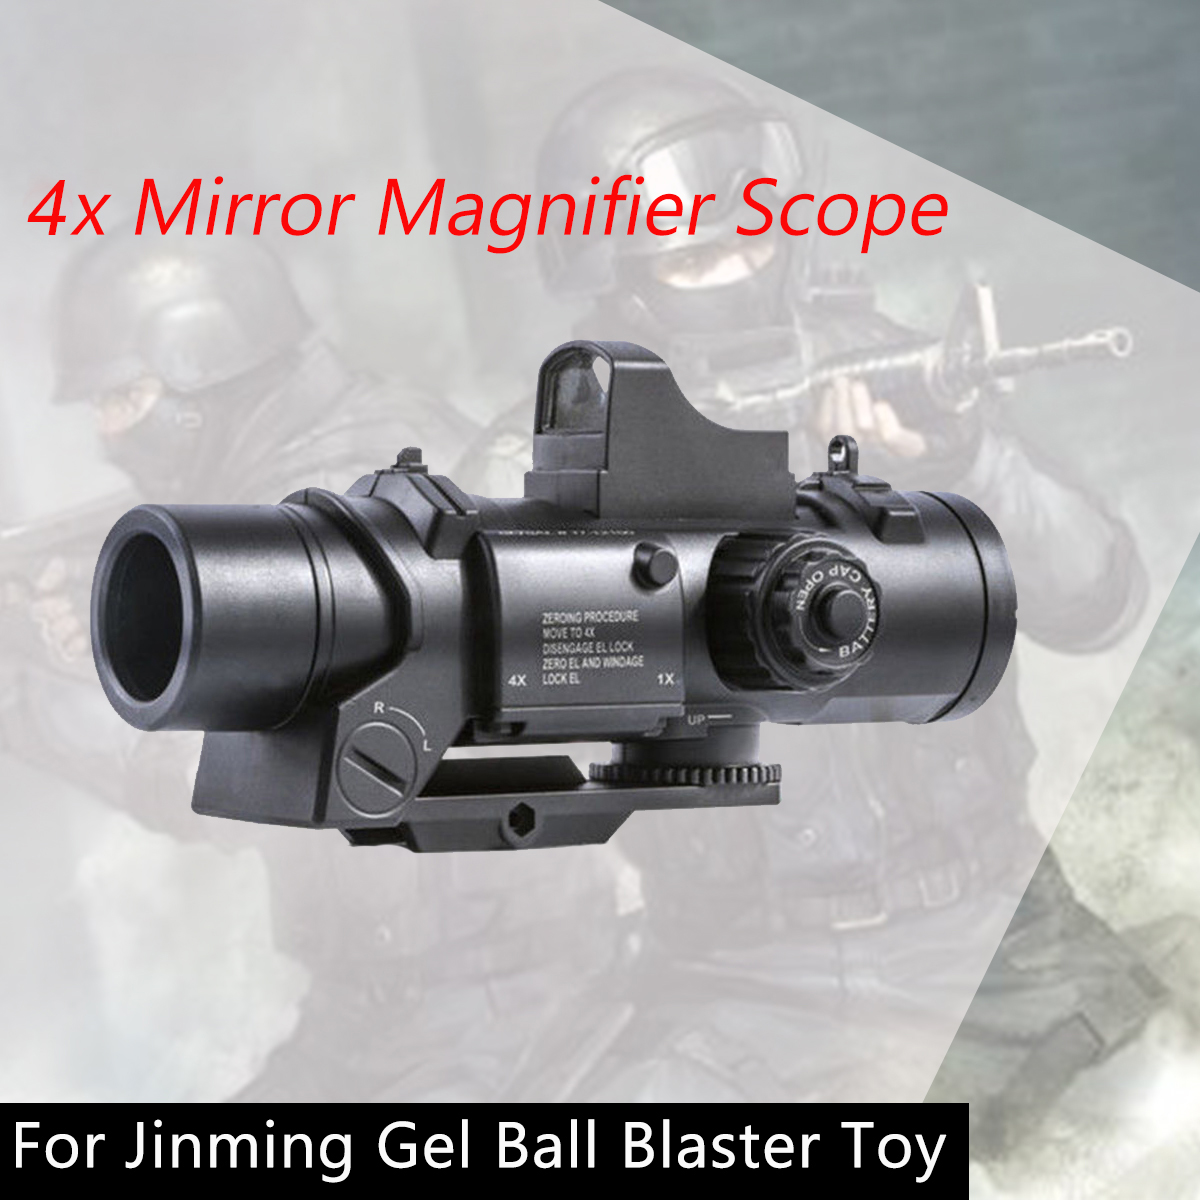 4X Mirror Magnifier Scope with Red Dot Sights For Jinming Gel Ball Water Toy